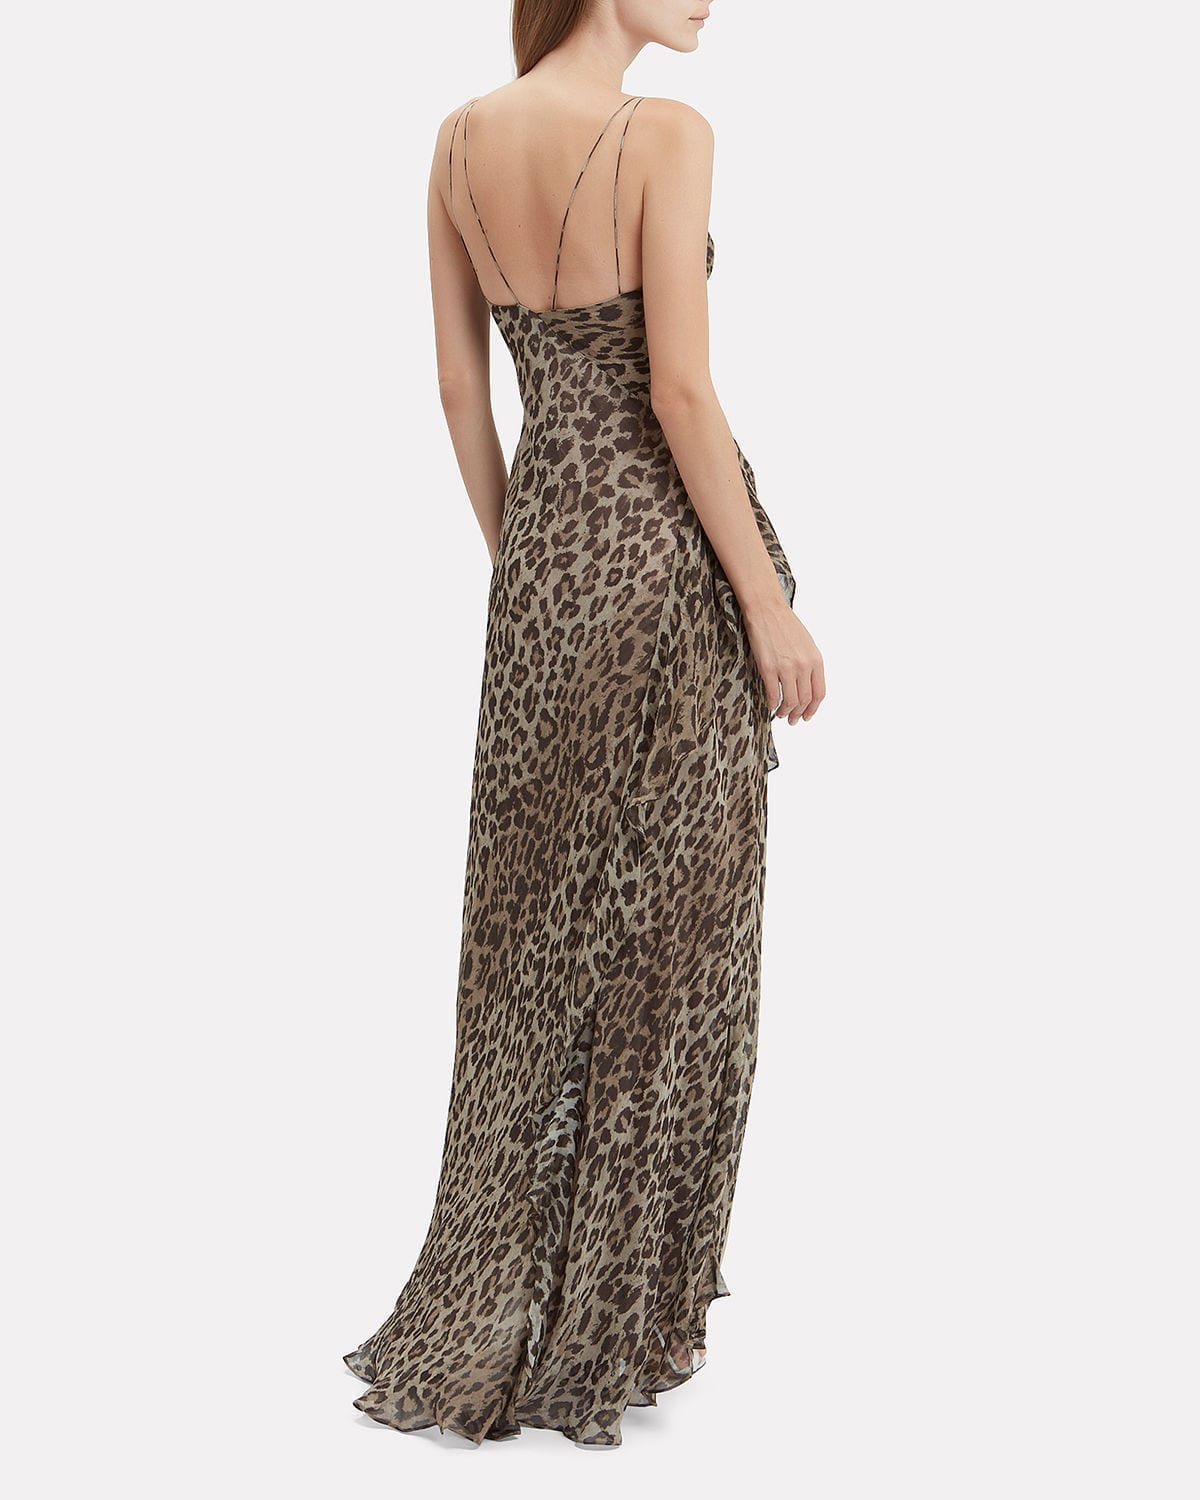 8315a8f39508 NICHOLAS Leopard Tie Front Maxi Multicolored Dress - We Select Dresses